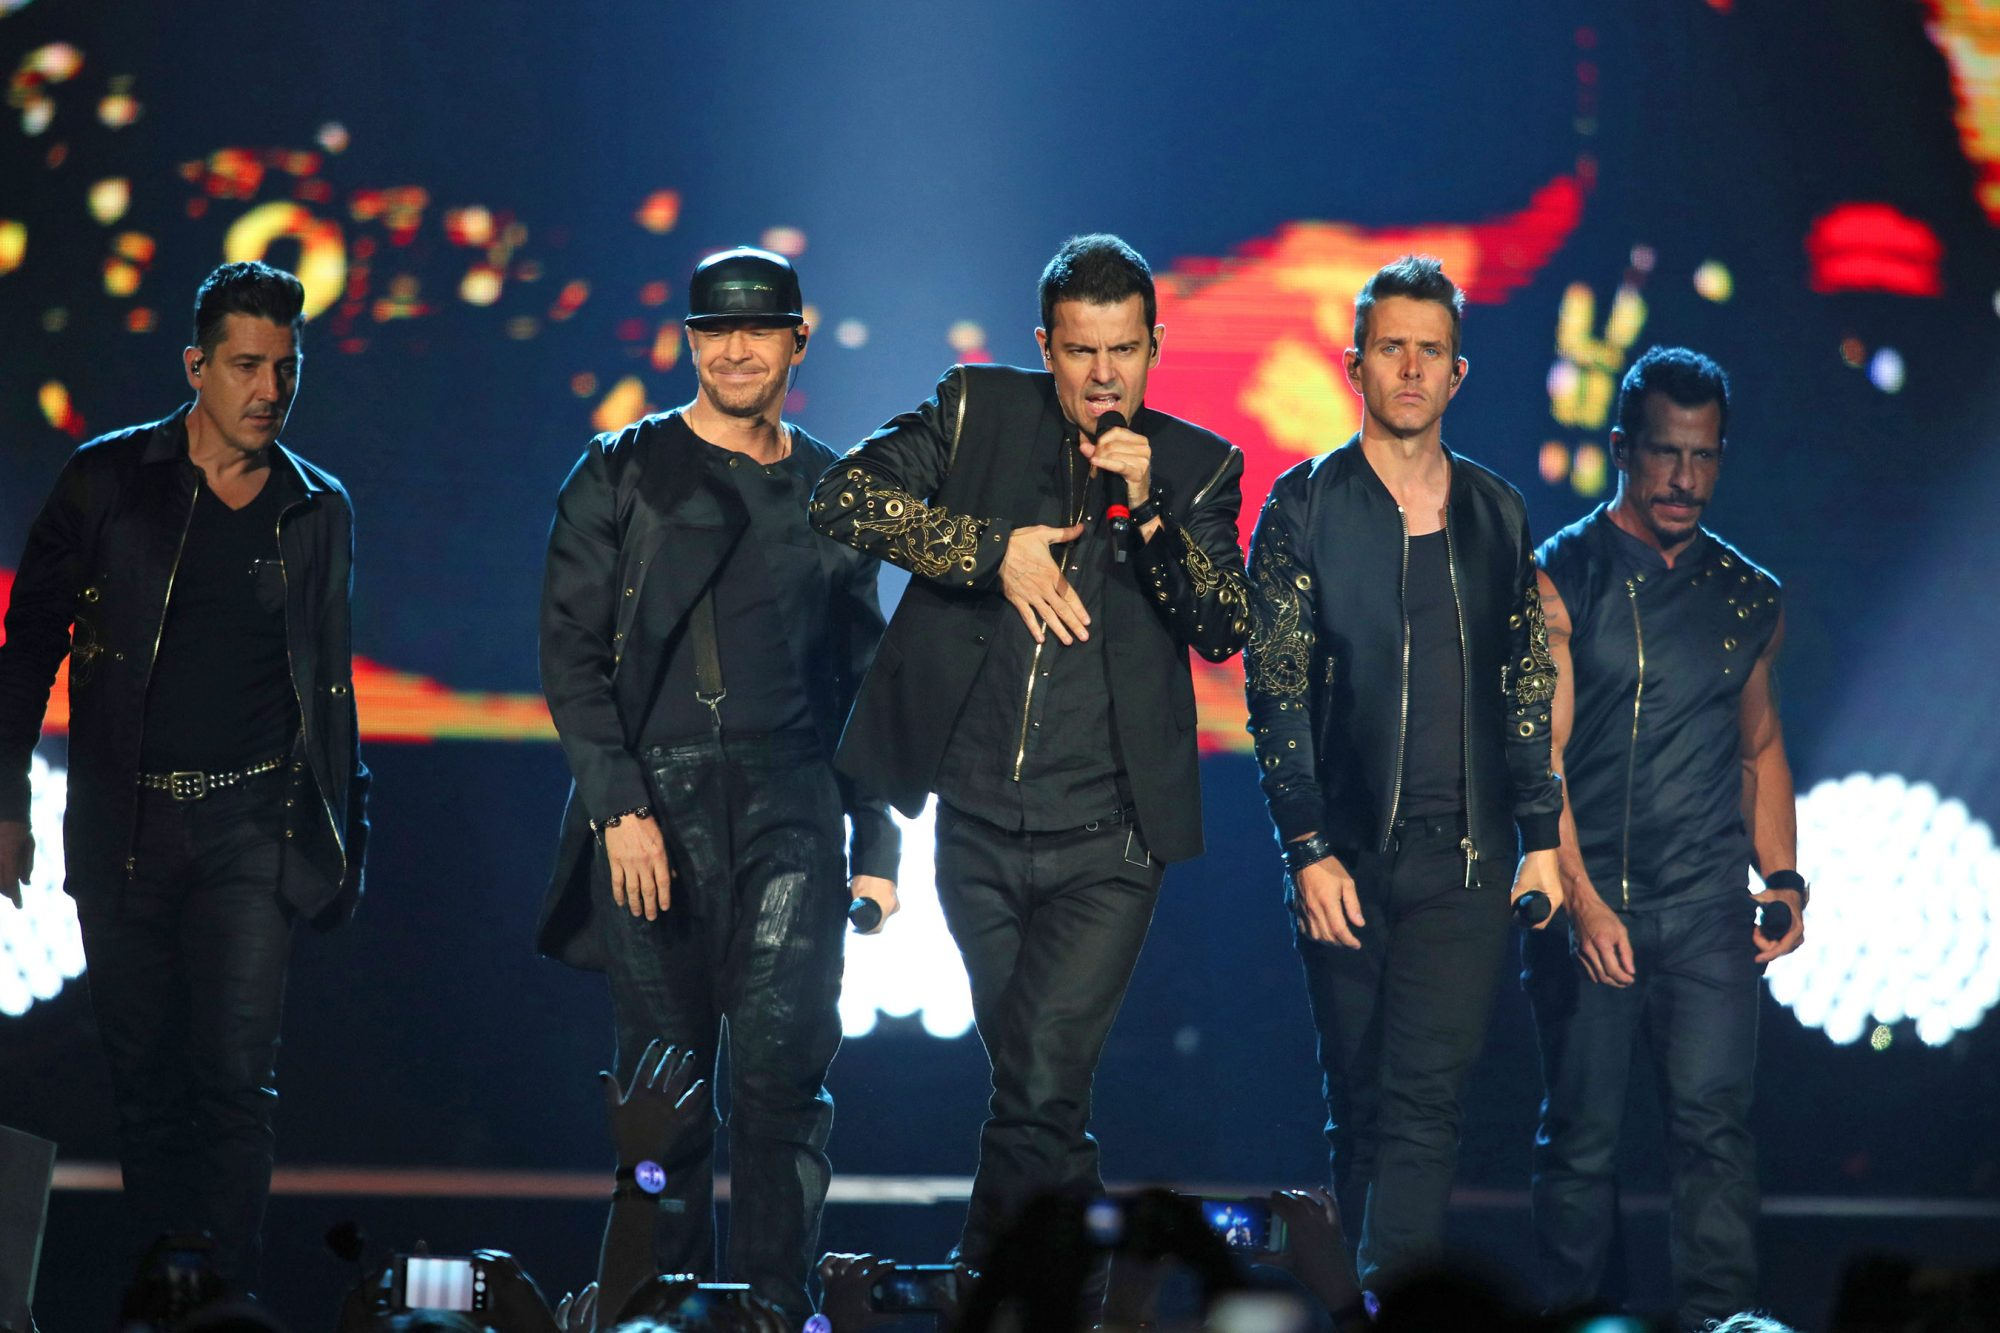 NKOTB With Boyz II Men & Paula Abdul In Concert - St Paul, Minnesota